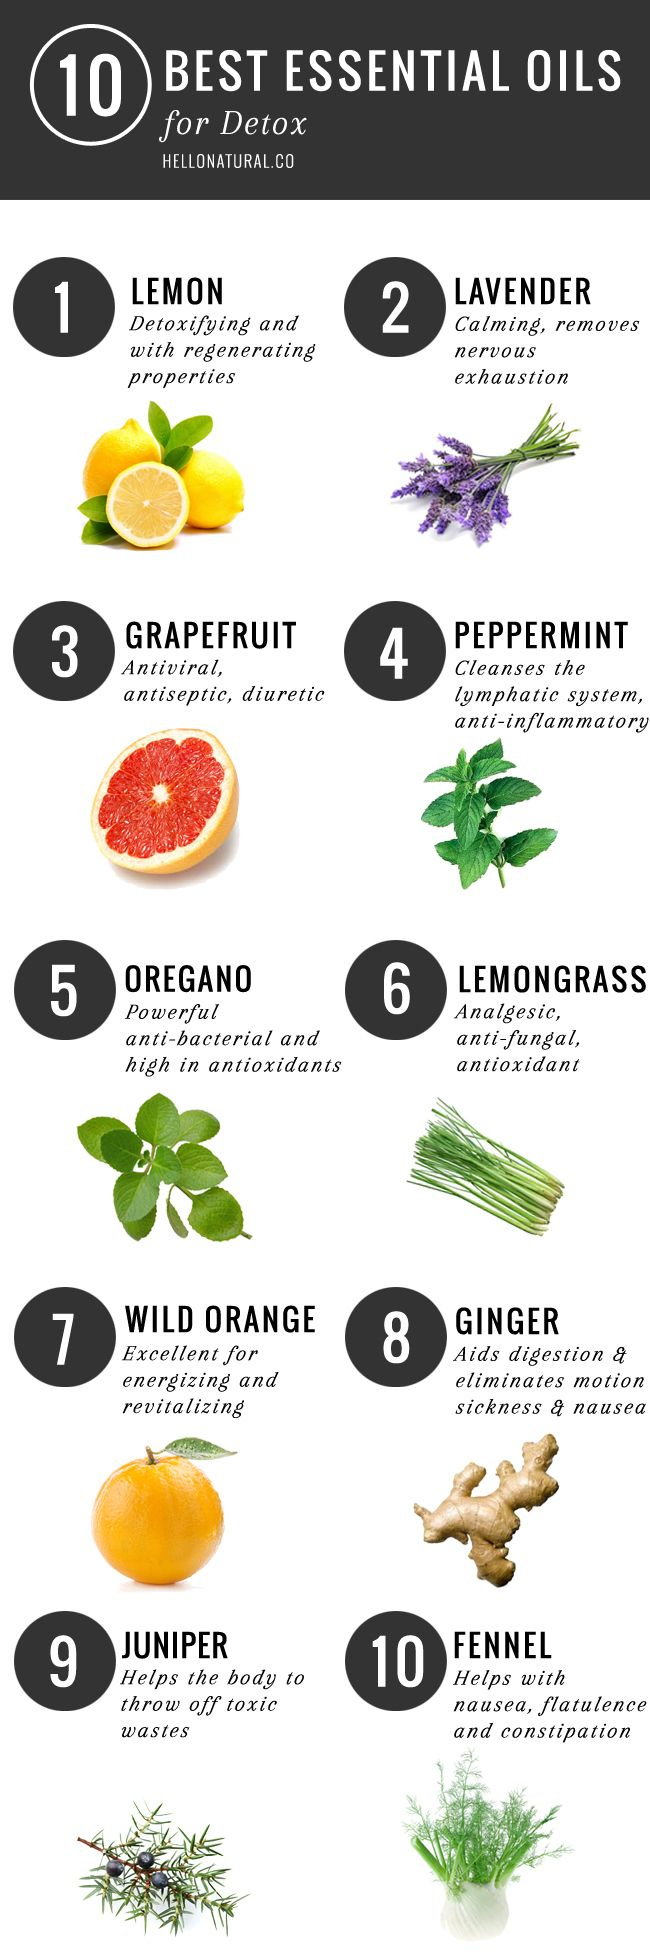 Top 10 Essential Oils for Detox | HelloNatural.co